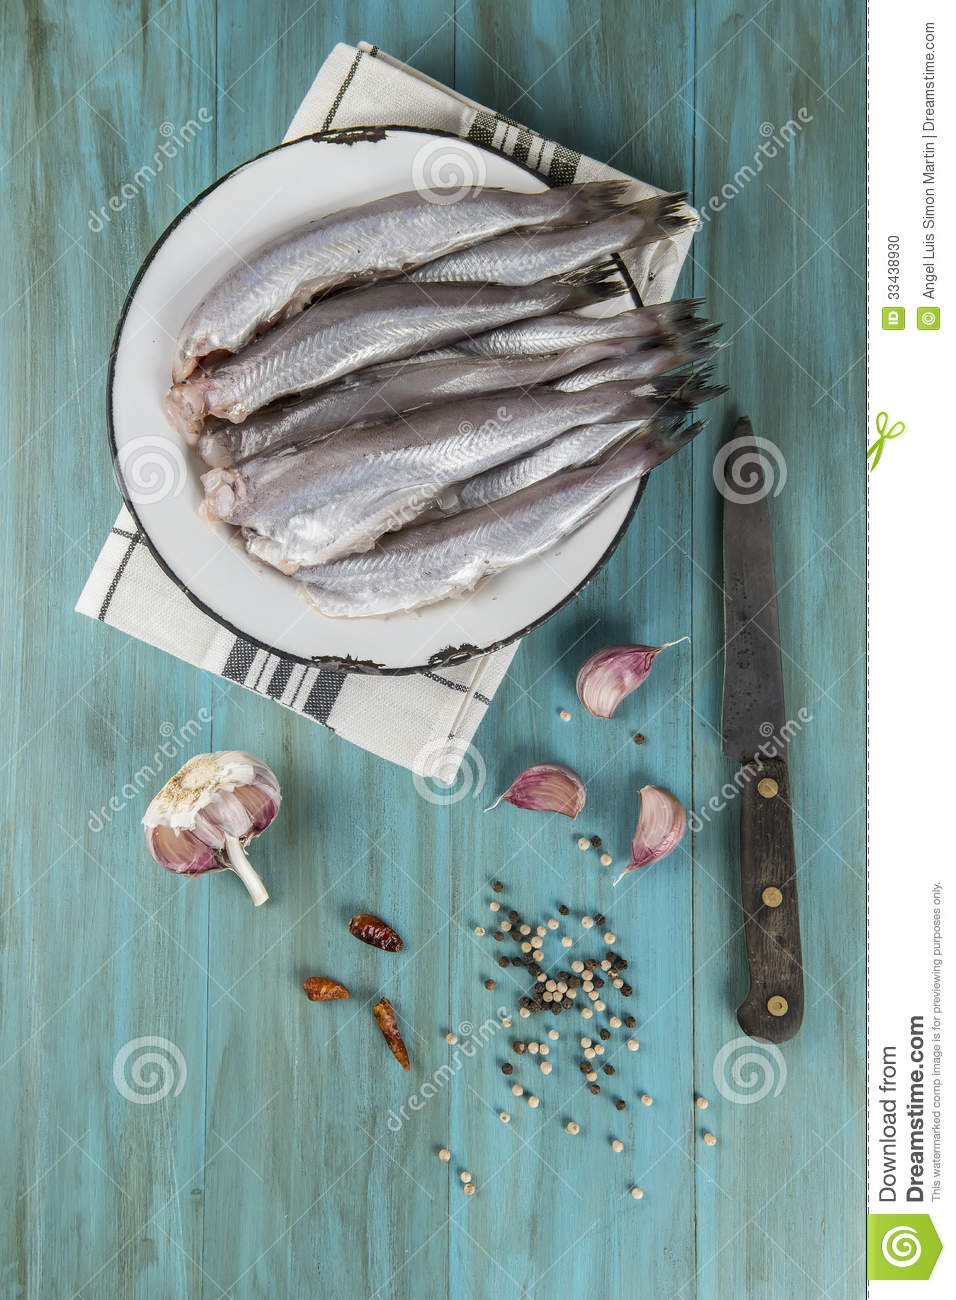 Cooking fish stock photo image 33438930 for Cooking fish in microwave